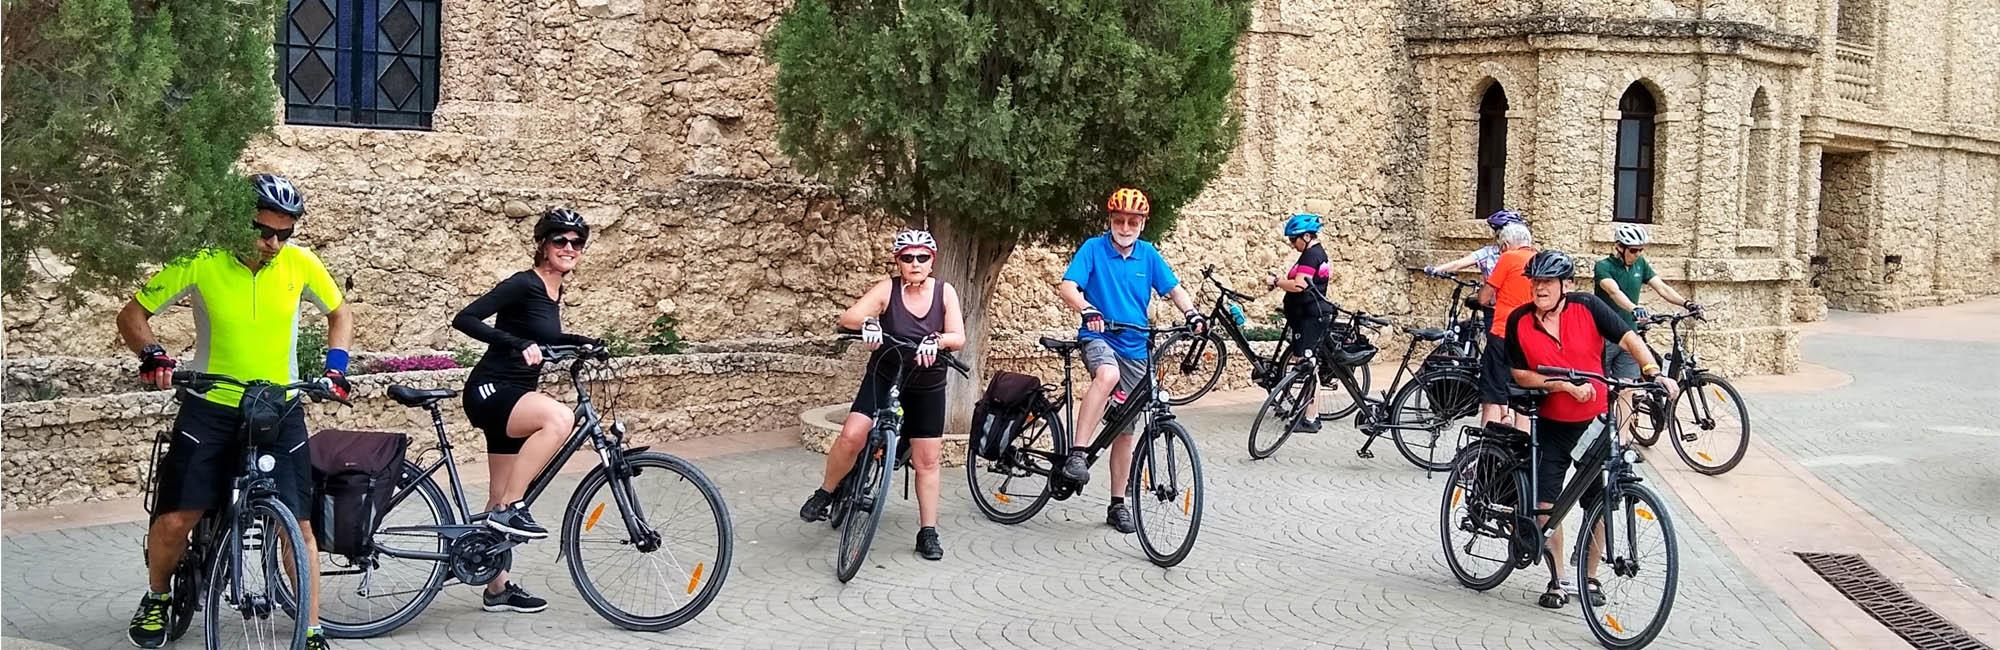 Group of cyclists in Murcia